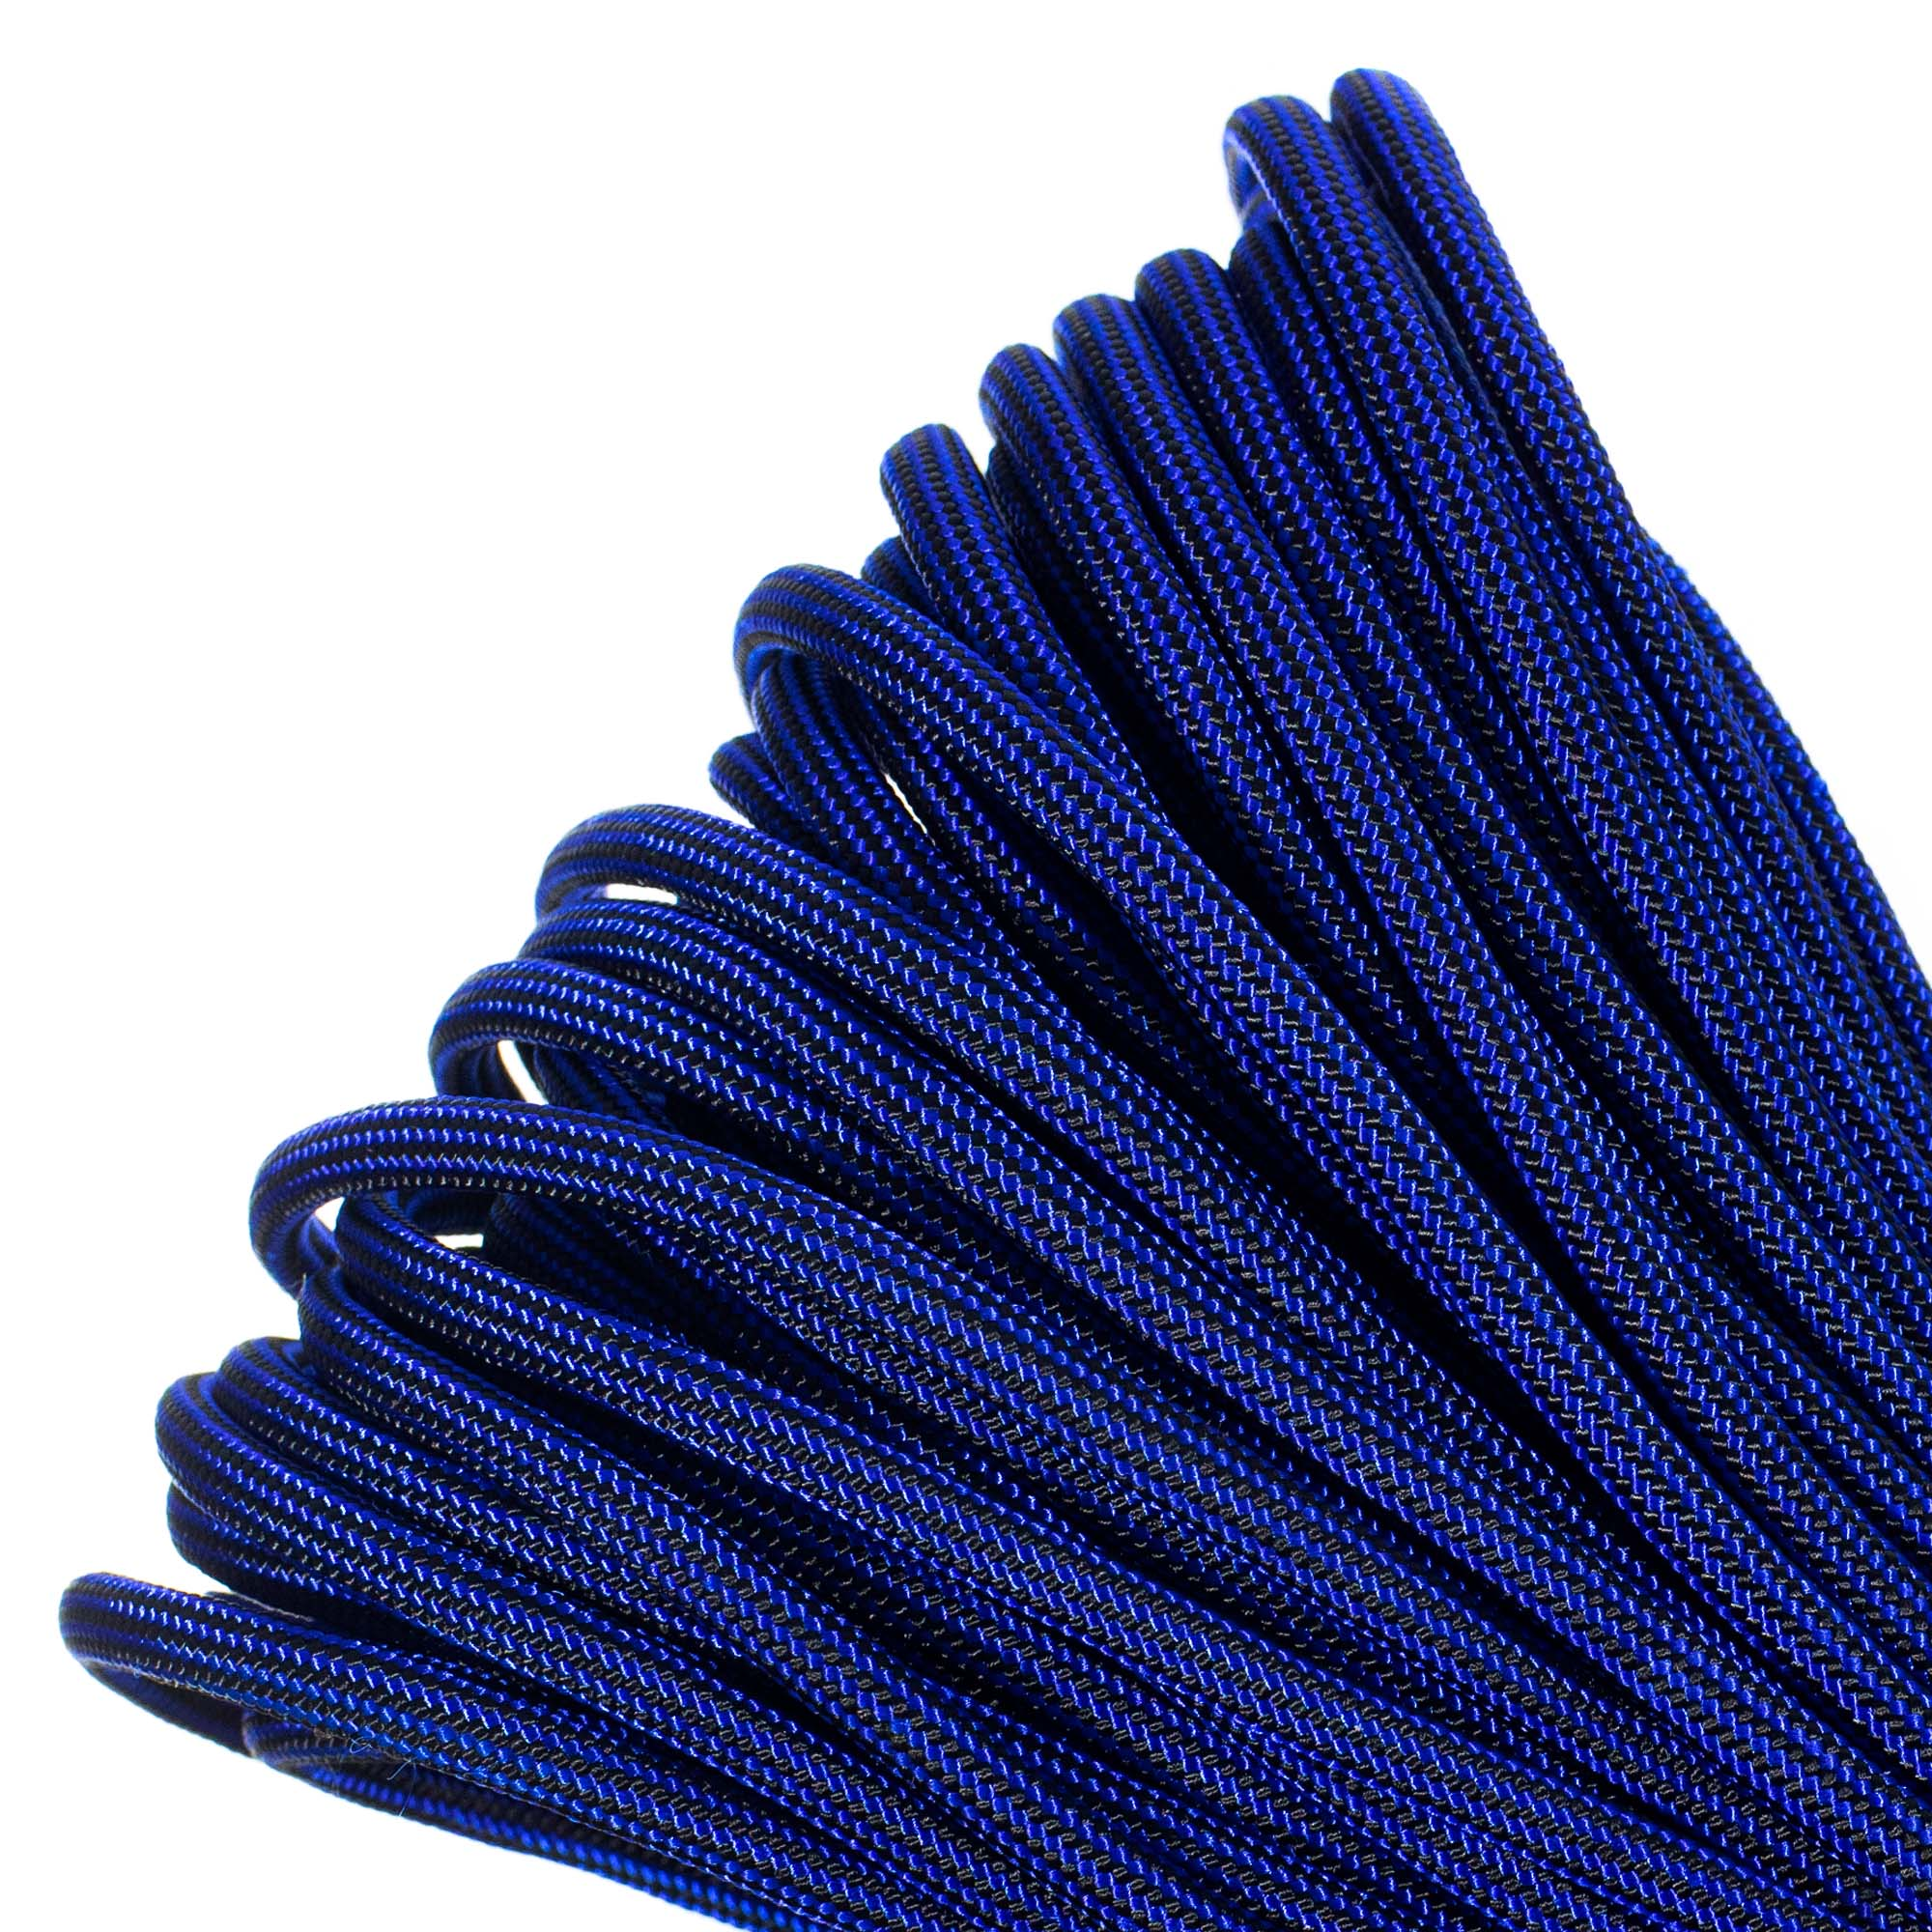 PARACORD PLANET 100 Feet USA Made 550 Type III Paracord